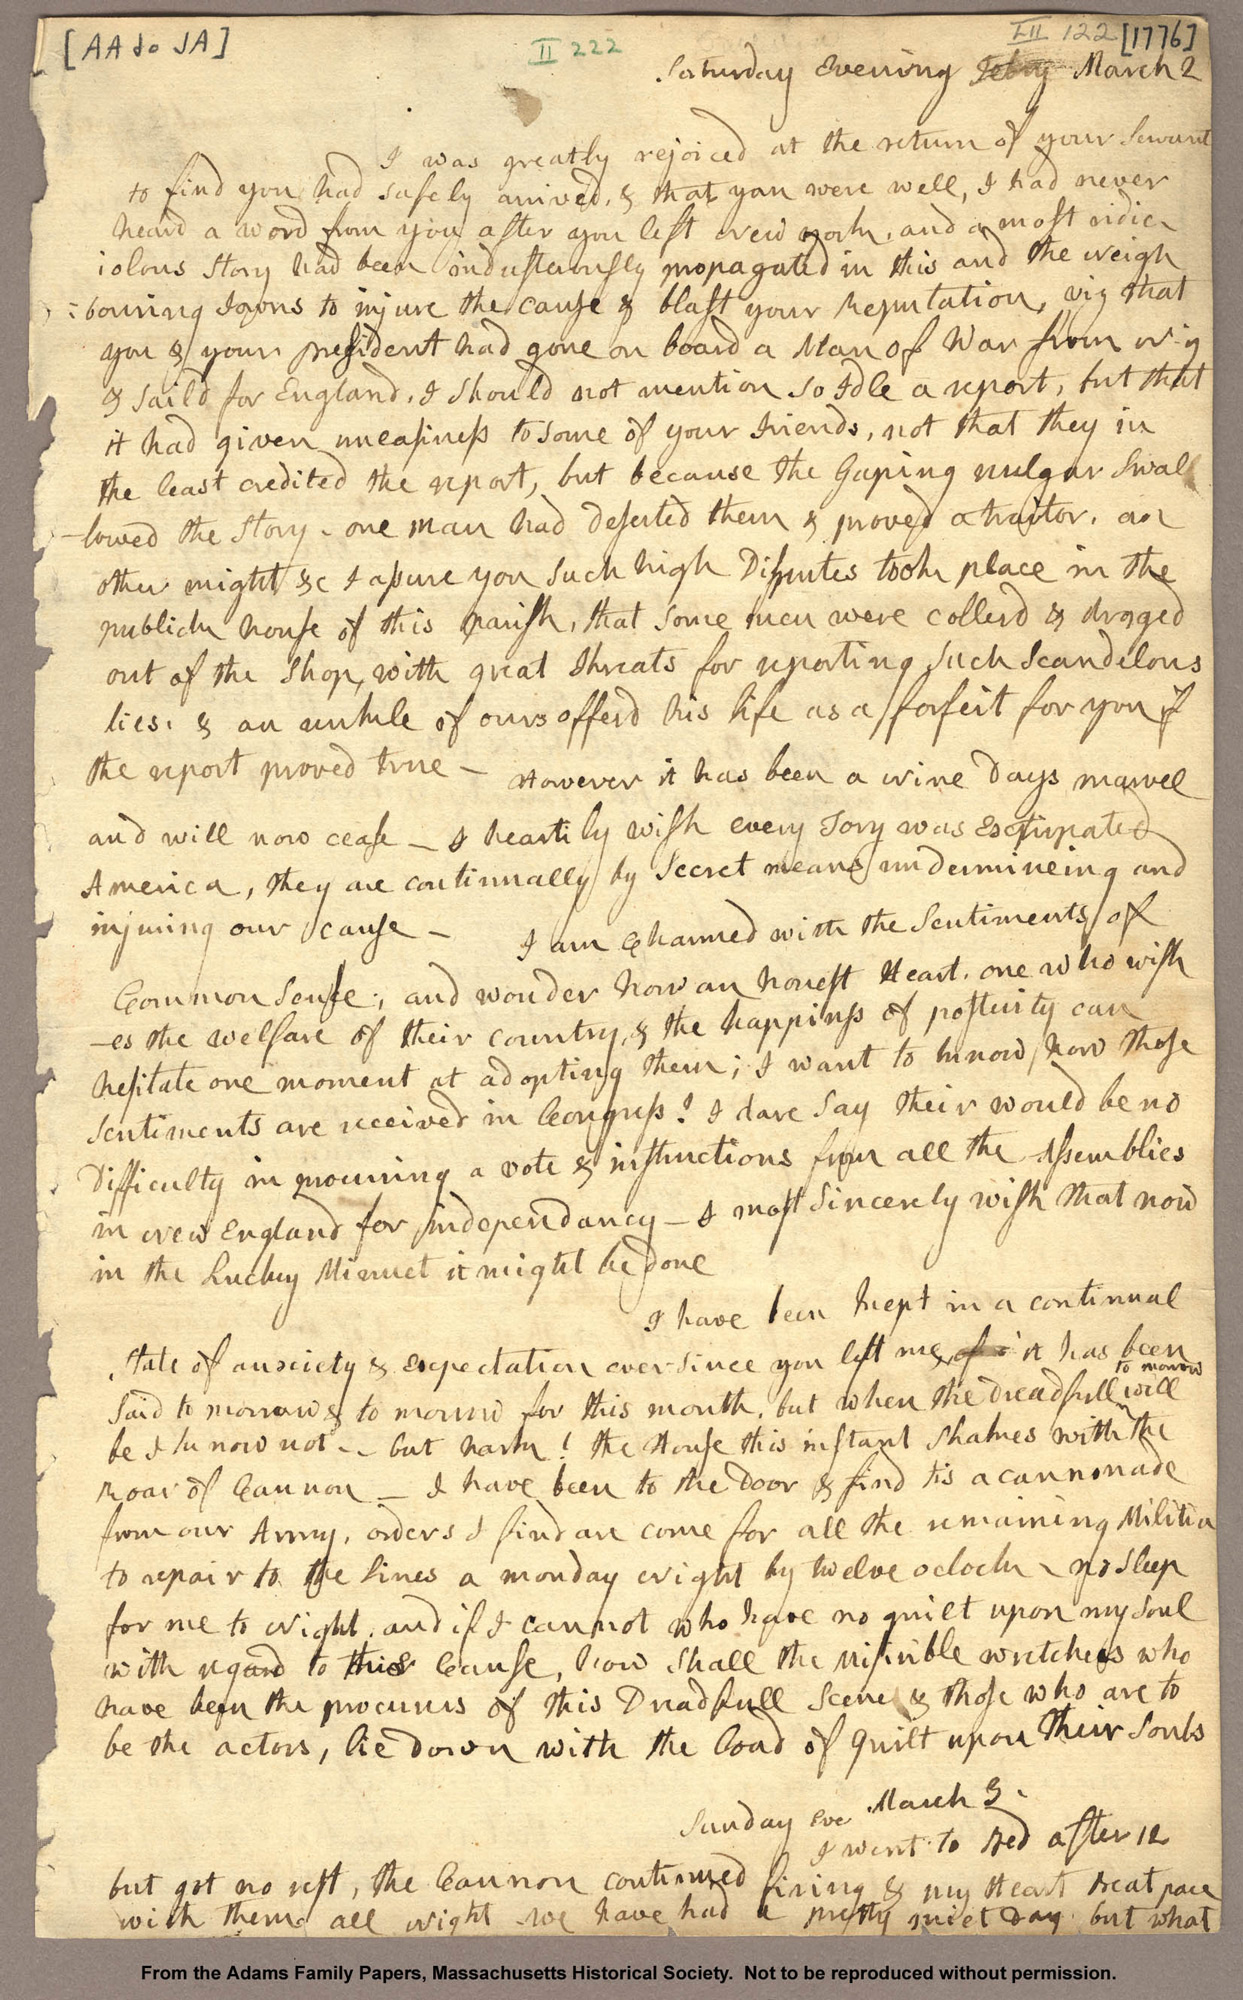 Letter from Abigail Adams to John Adams, 1776, quoting Julius Caesar